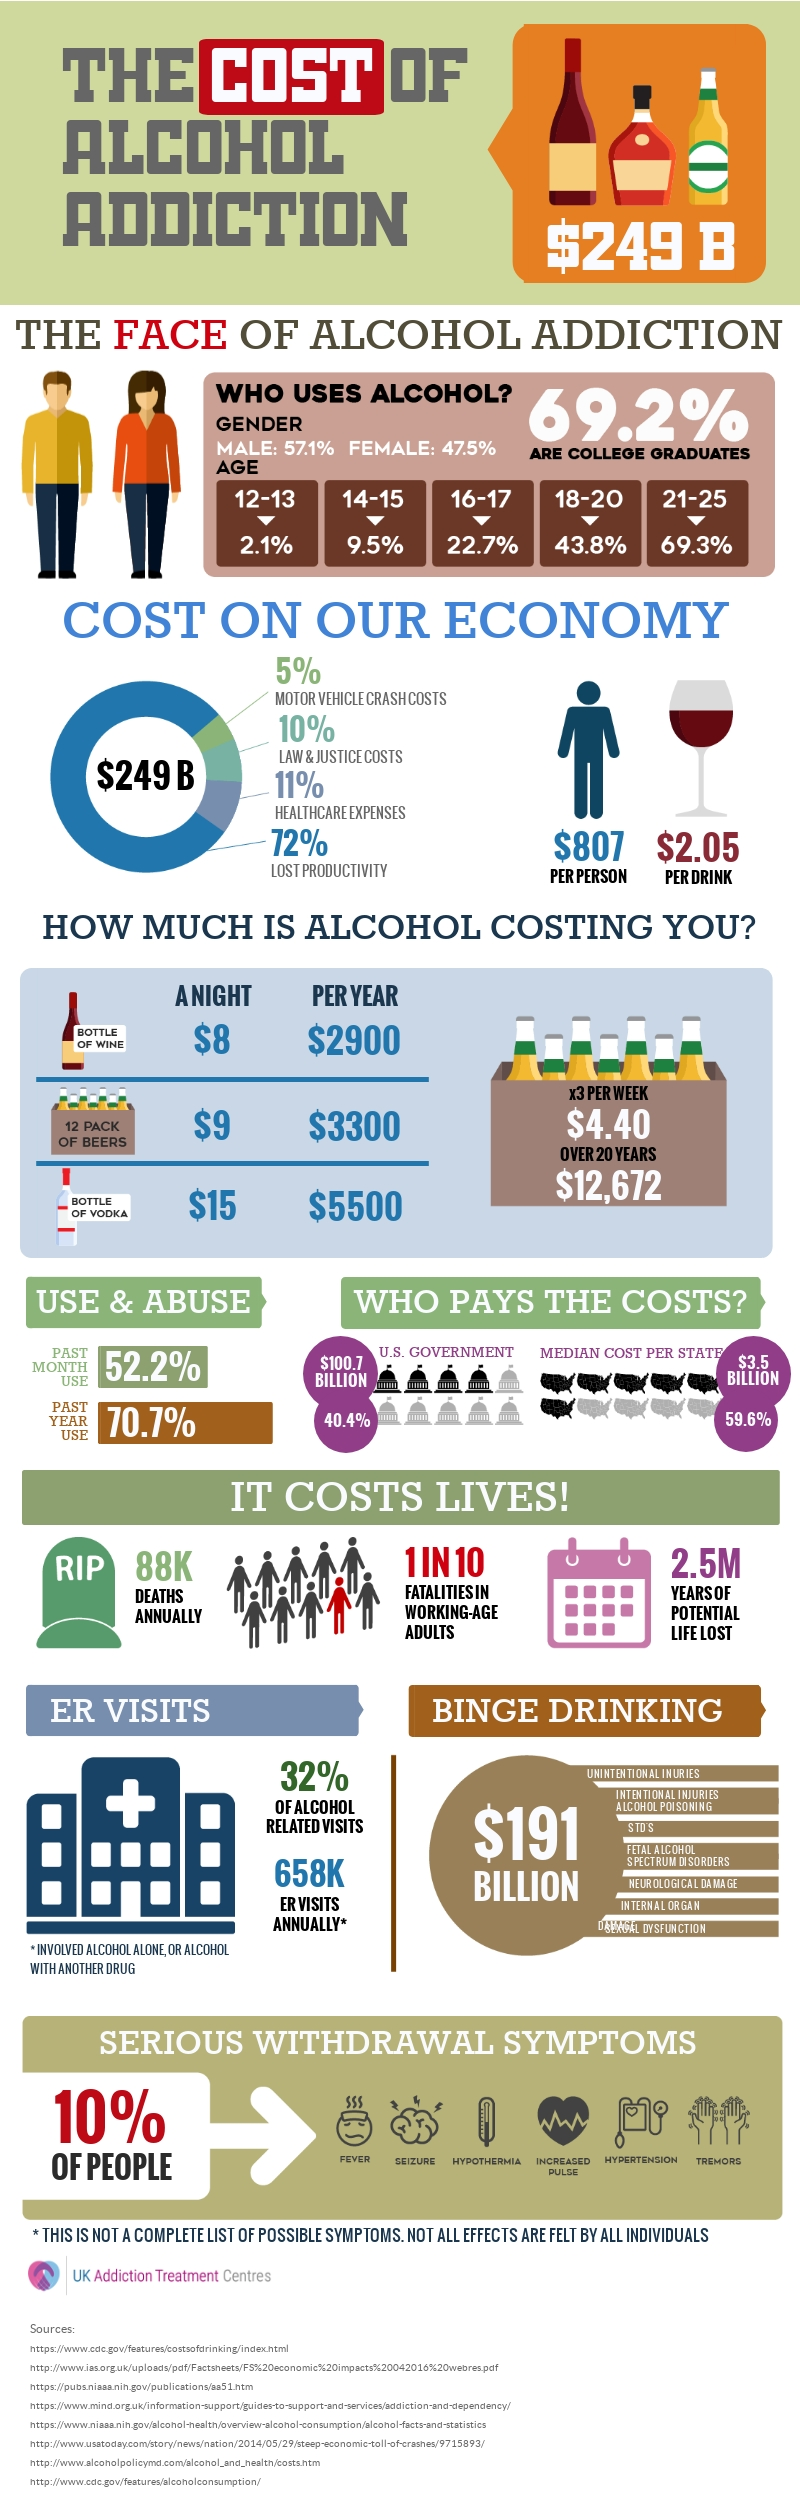 the-cost-of-alcohol-addiction